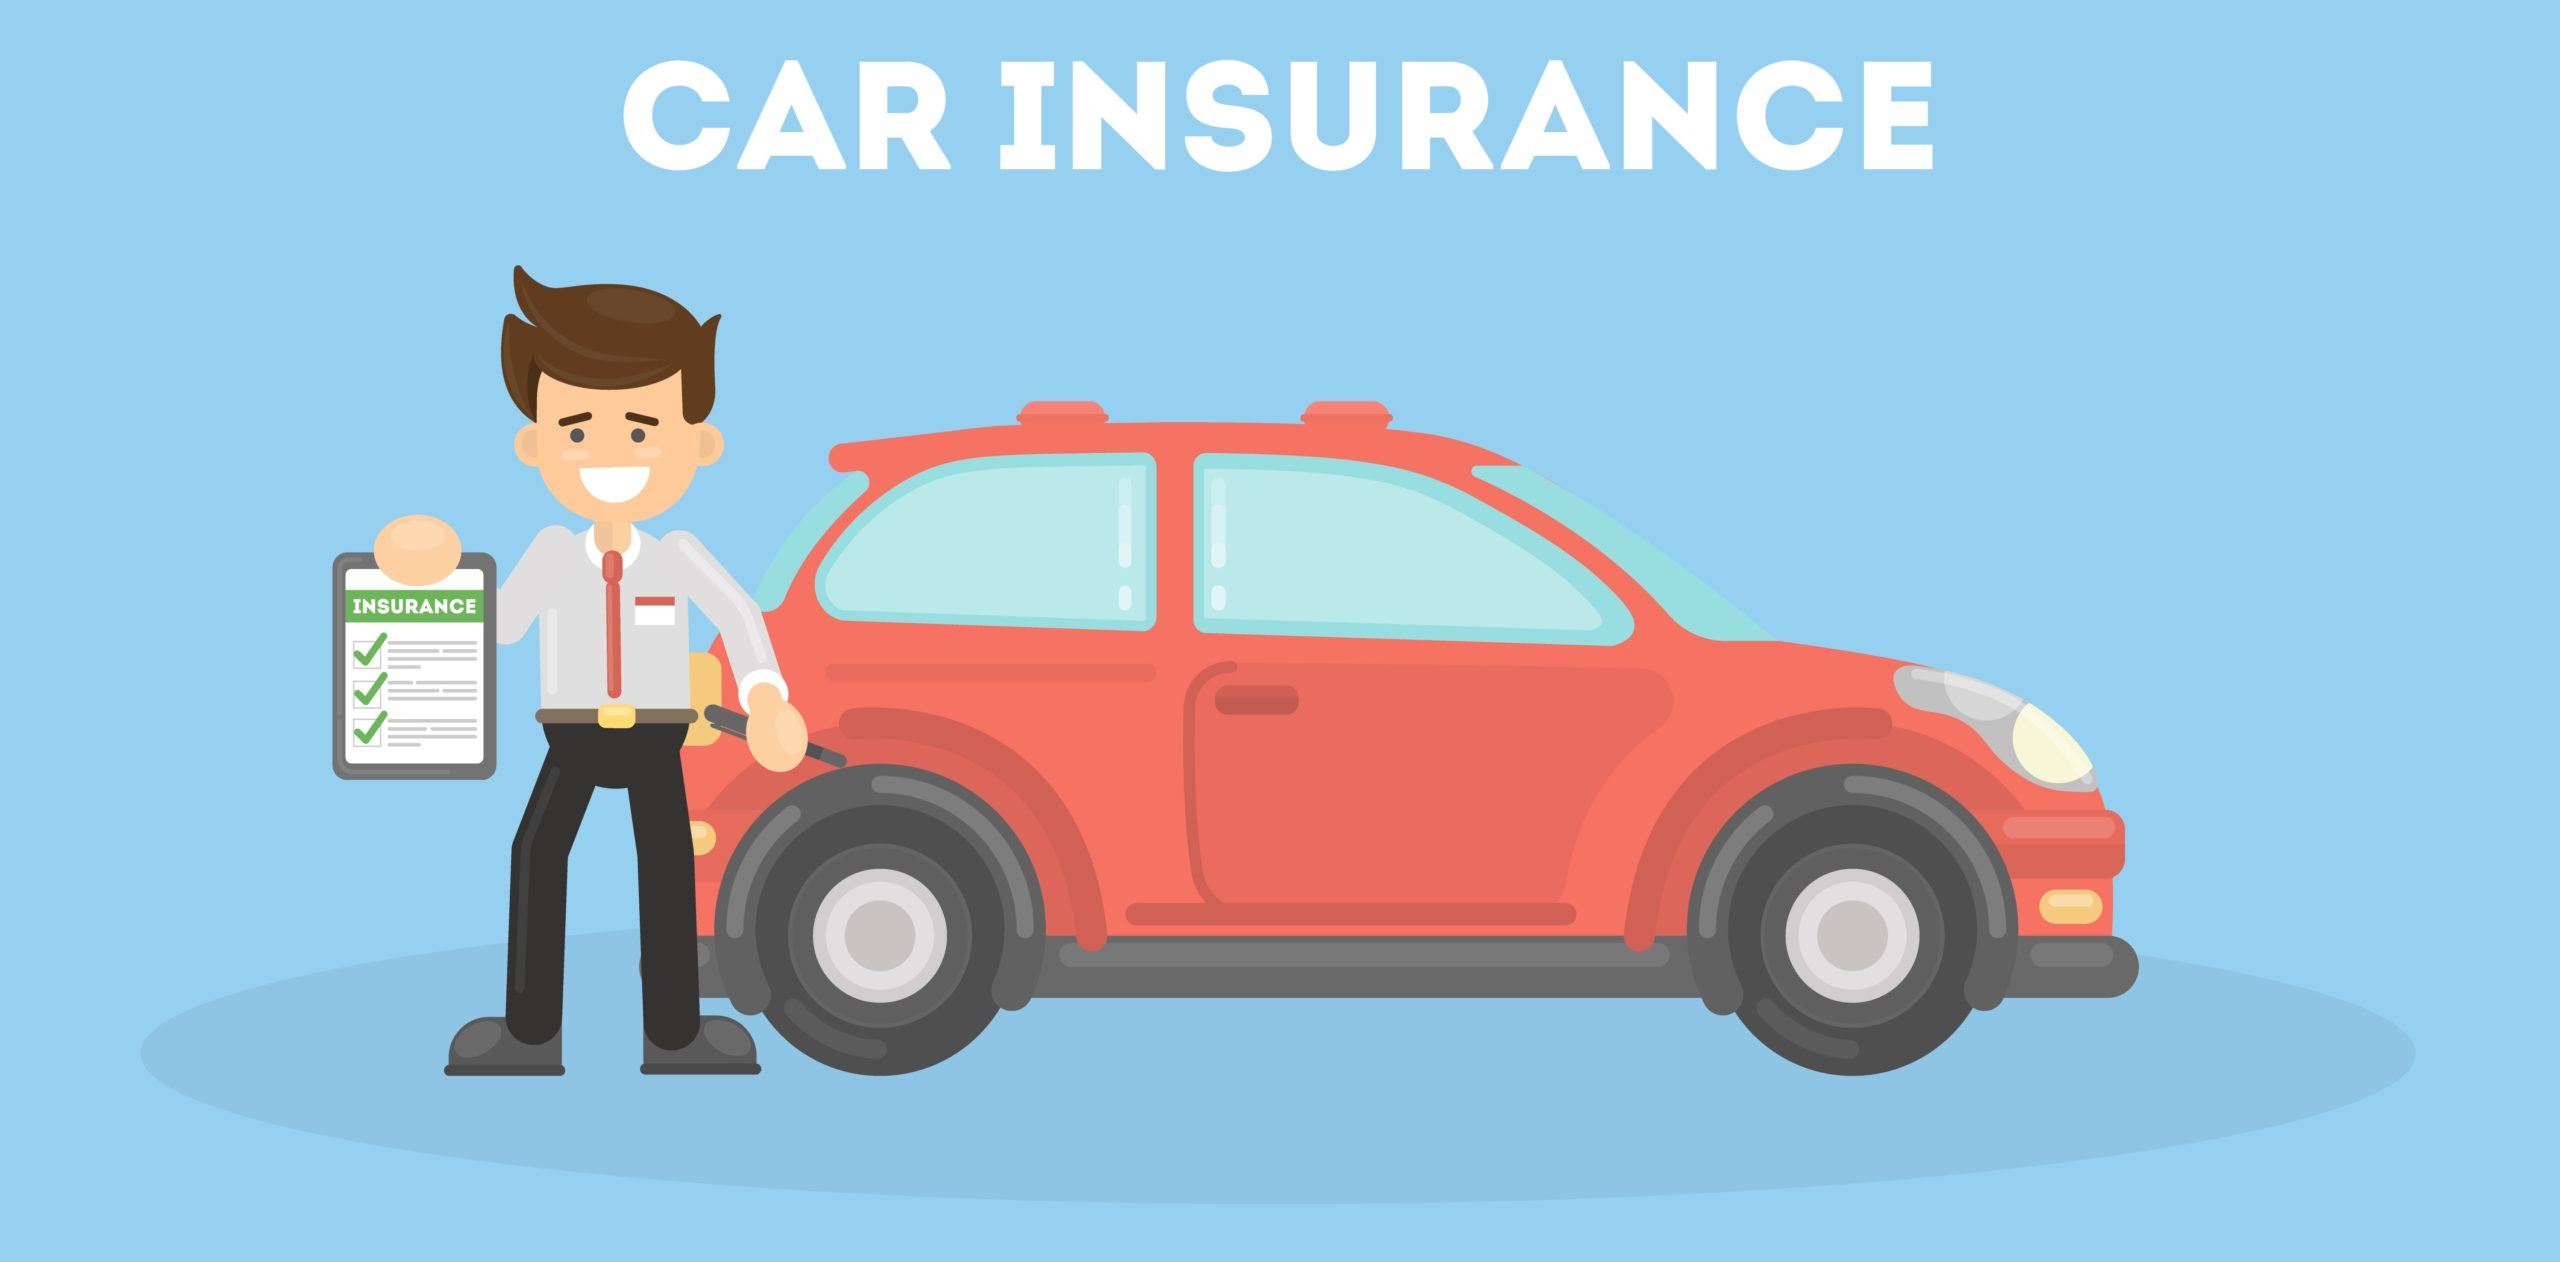 Does Florida Auto Insurance Cover Rental Car Accidents?